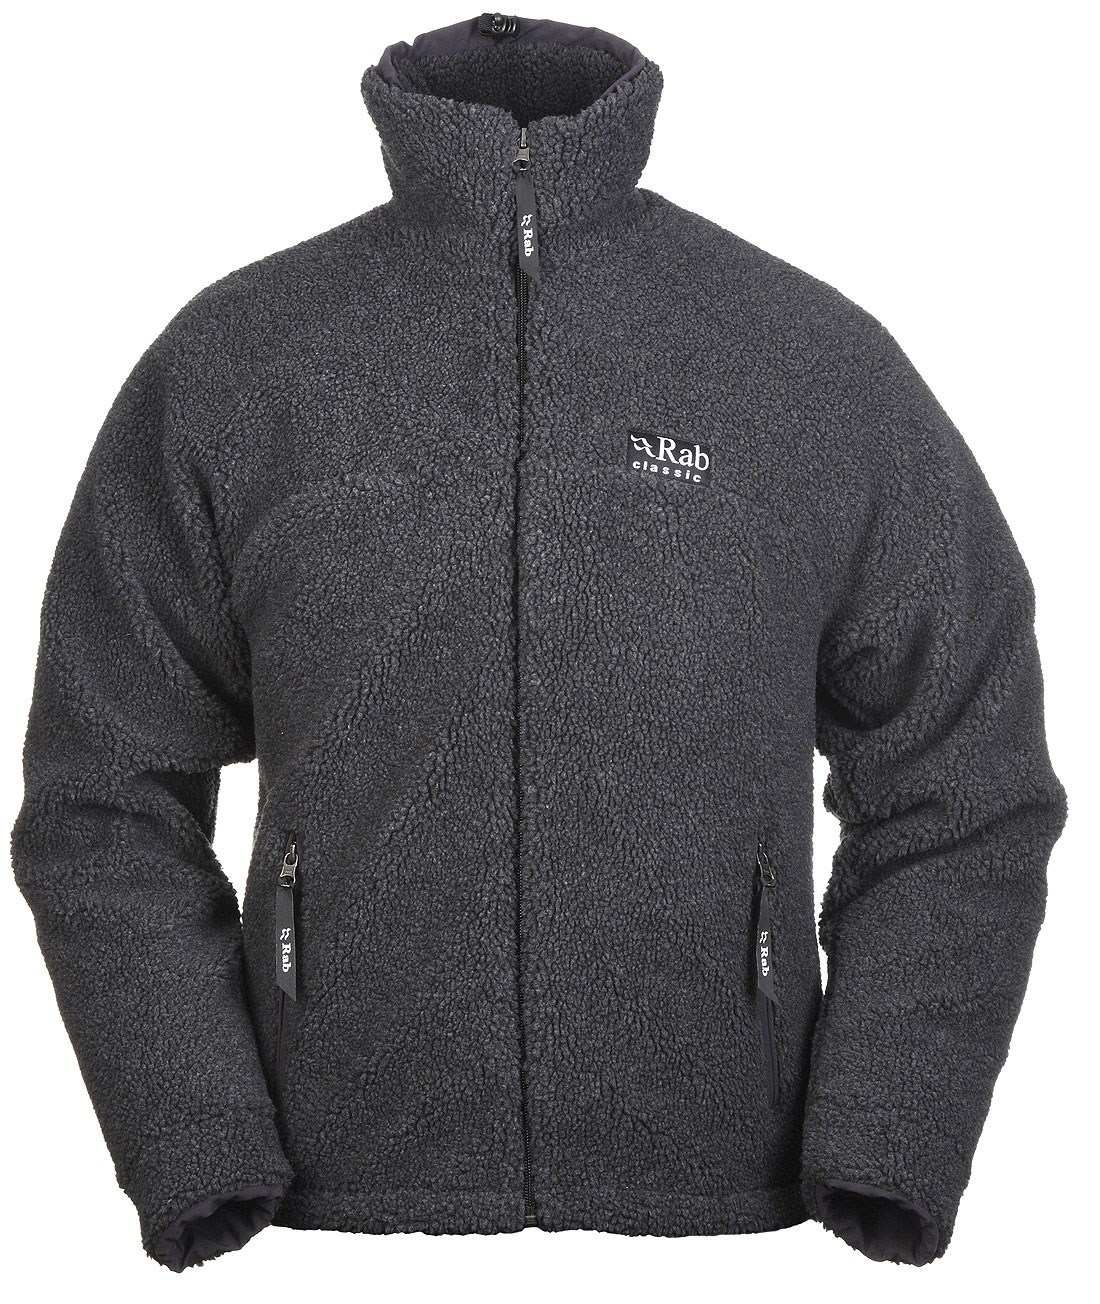 Mens Heavyweight Fleece Jackets | GO Outdoors